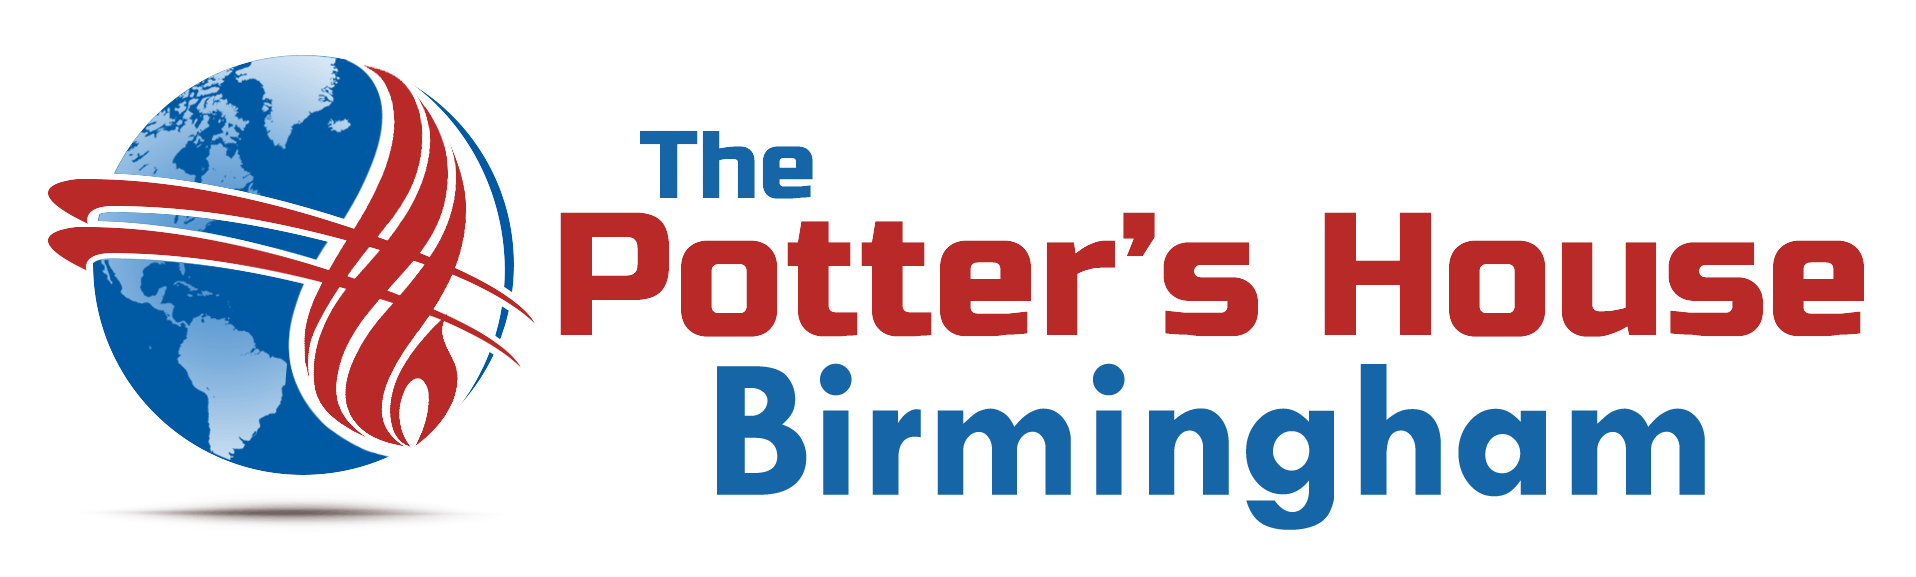 The Potters House Birmingham